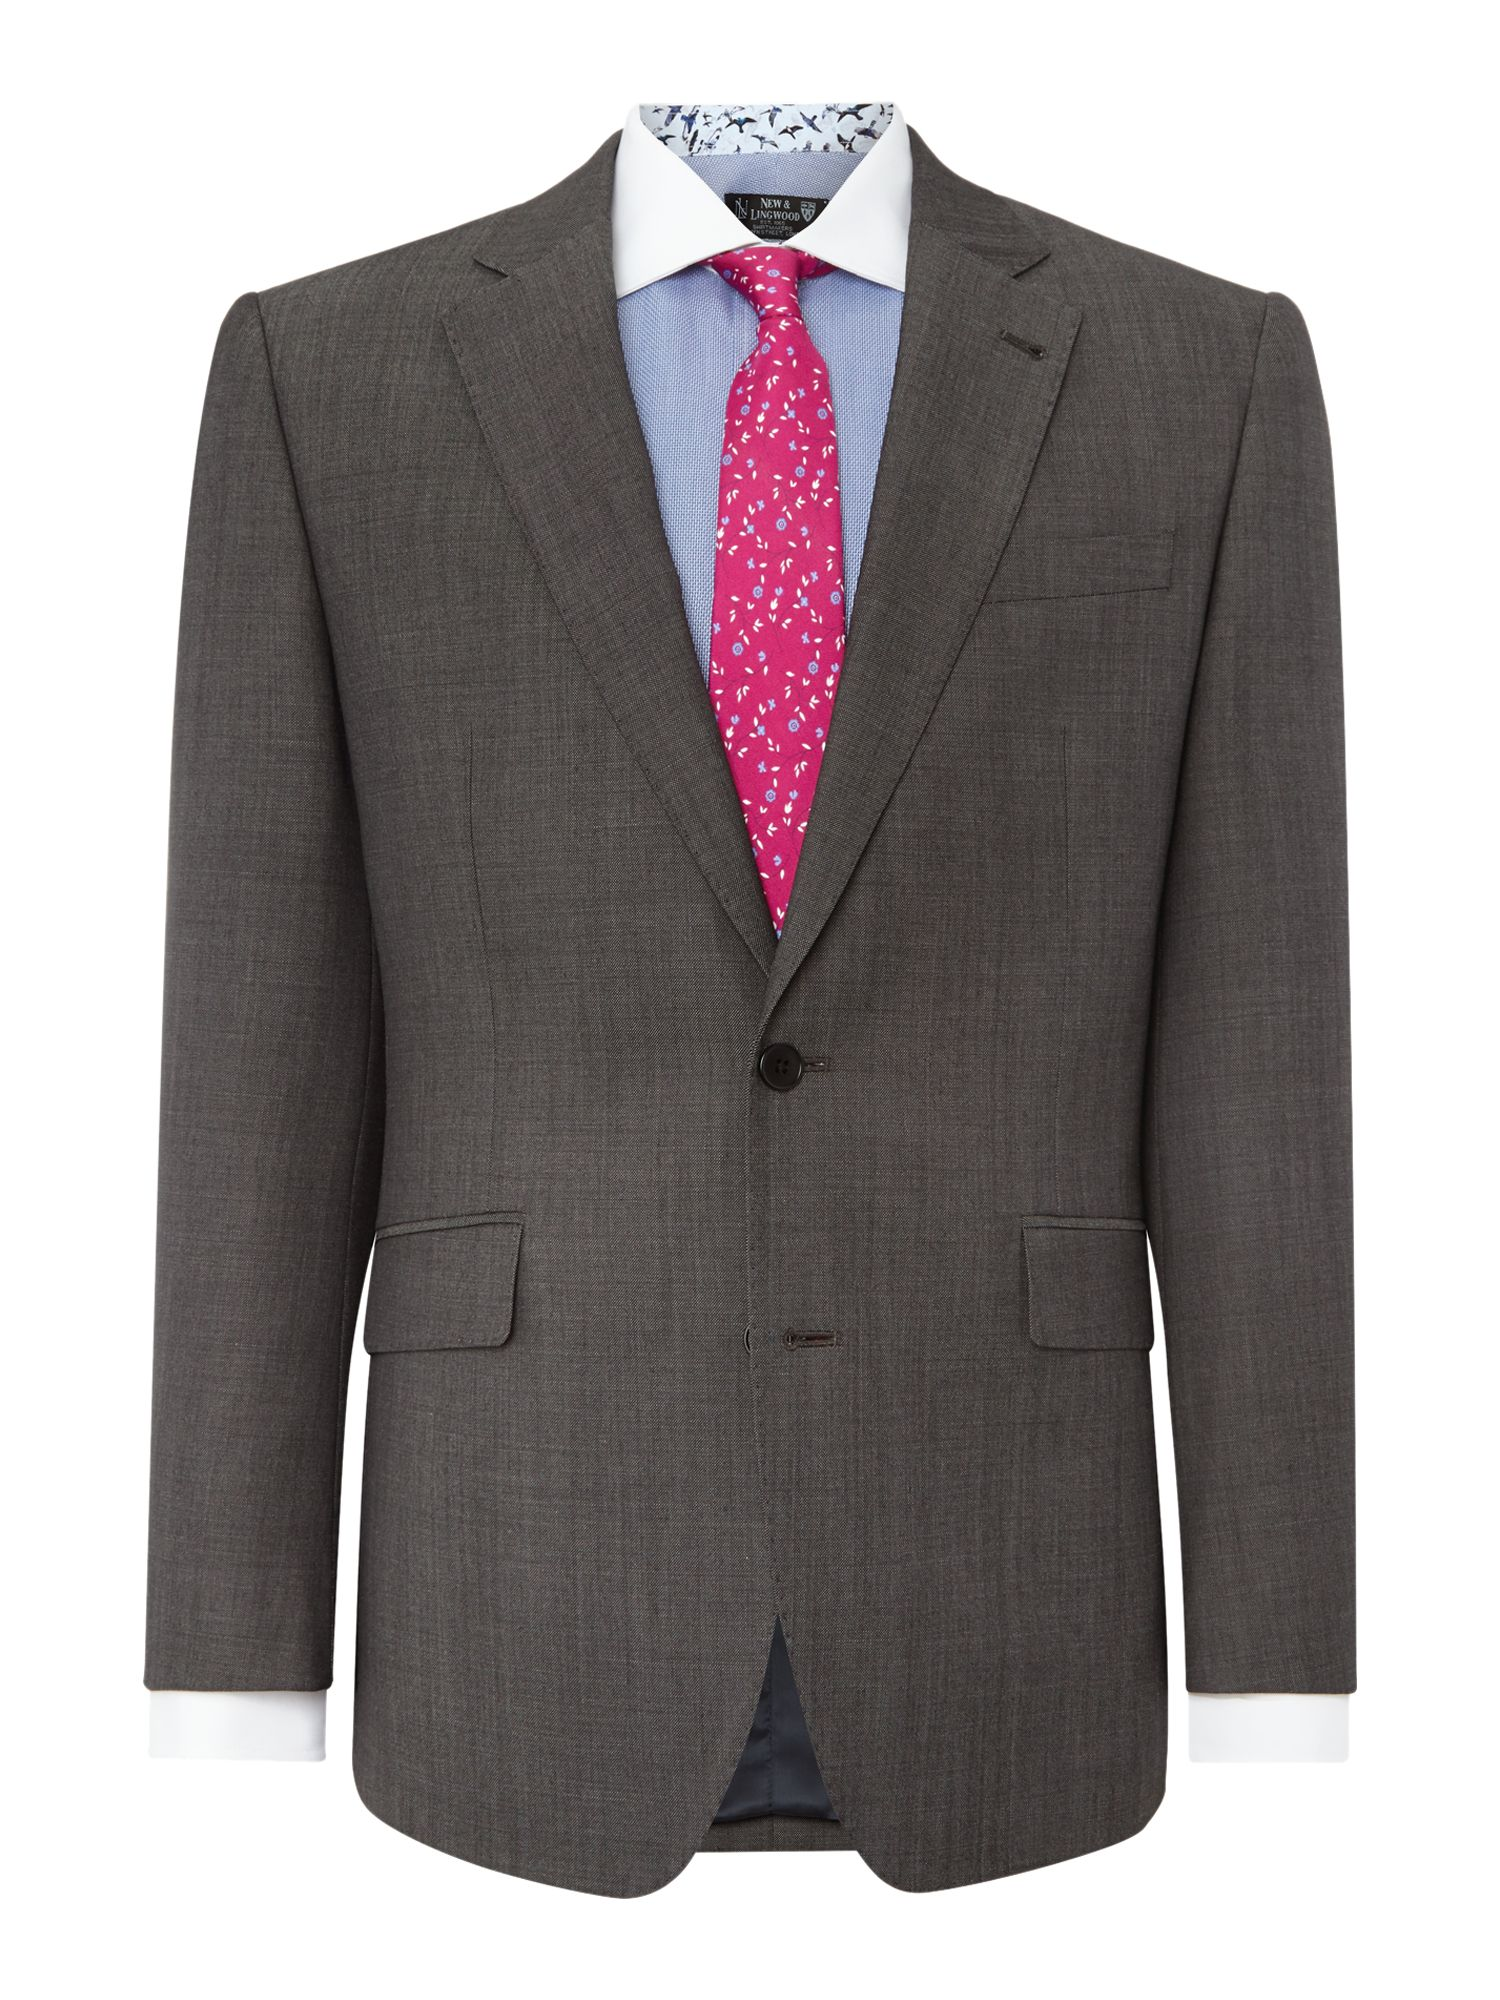 New & Lingwood Men's New & Lingwood Frockland Plain Tailored Fit Suit Jacket, Grey